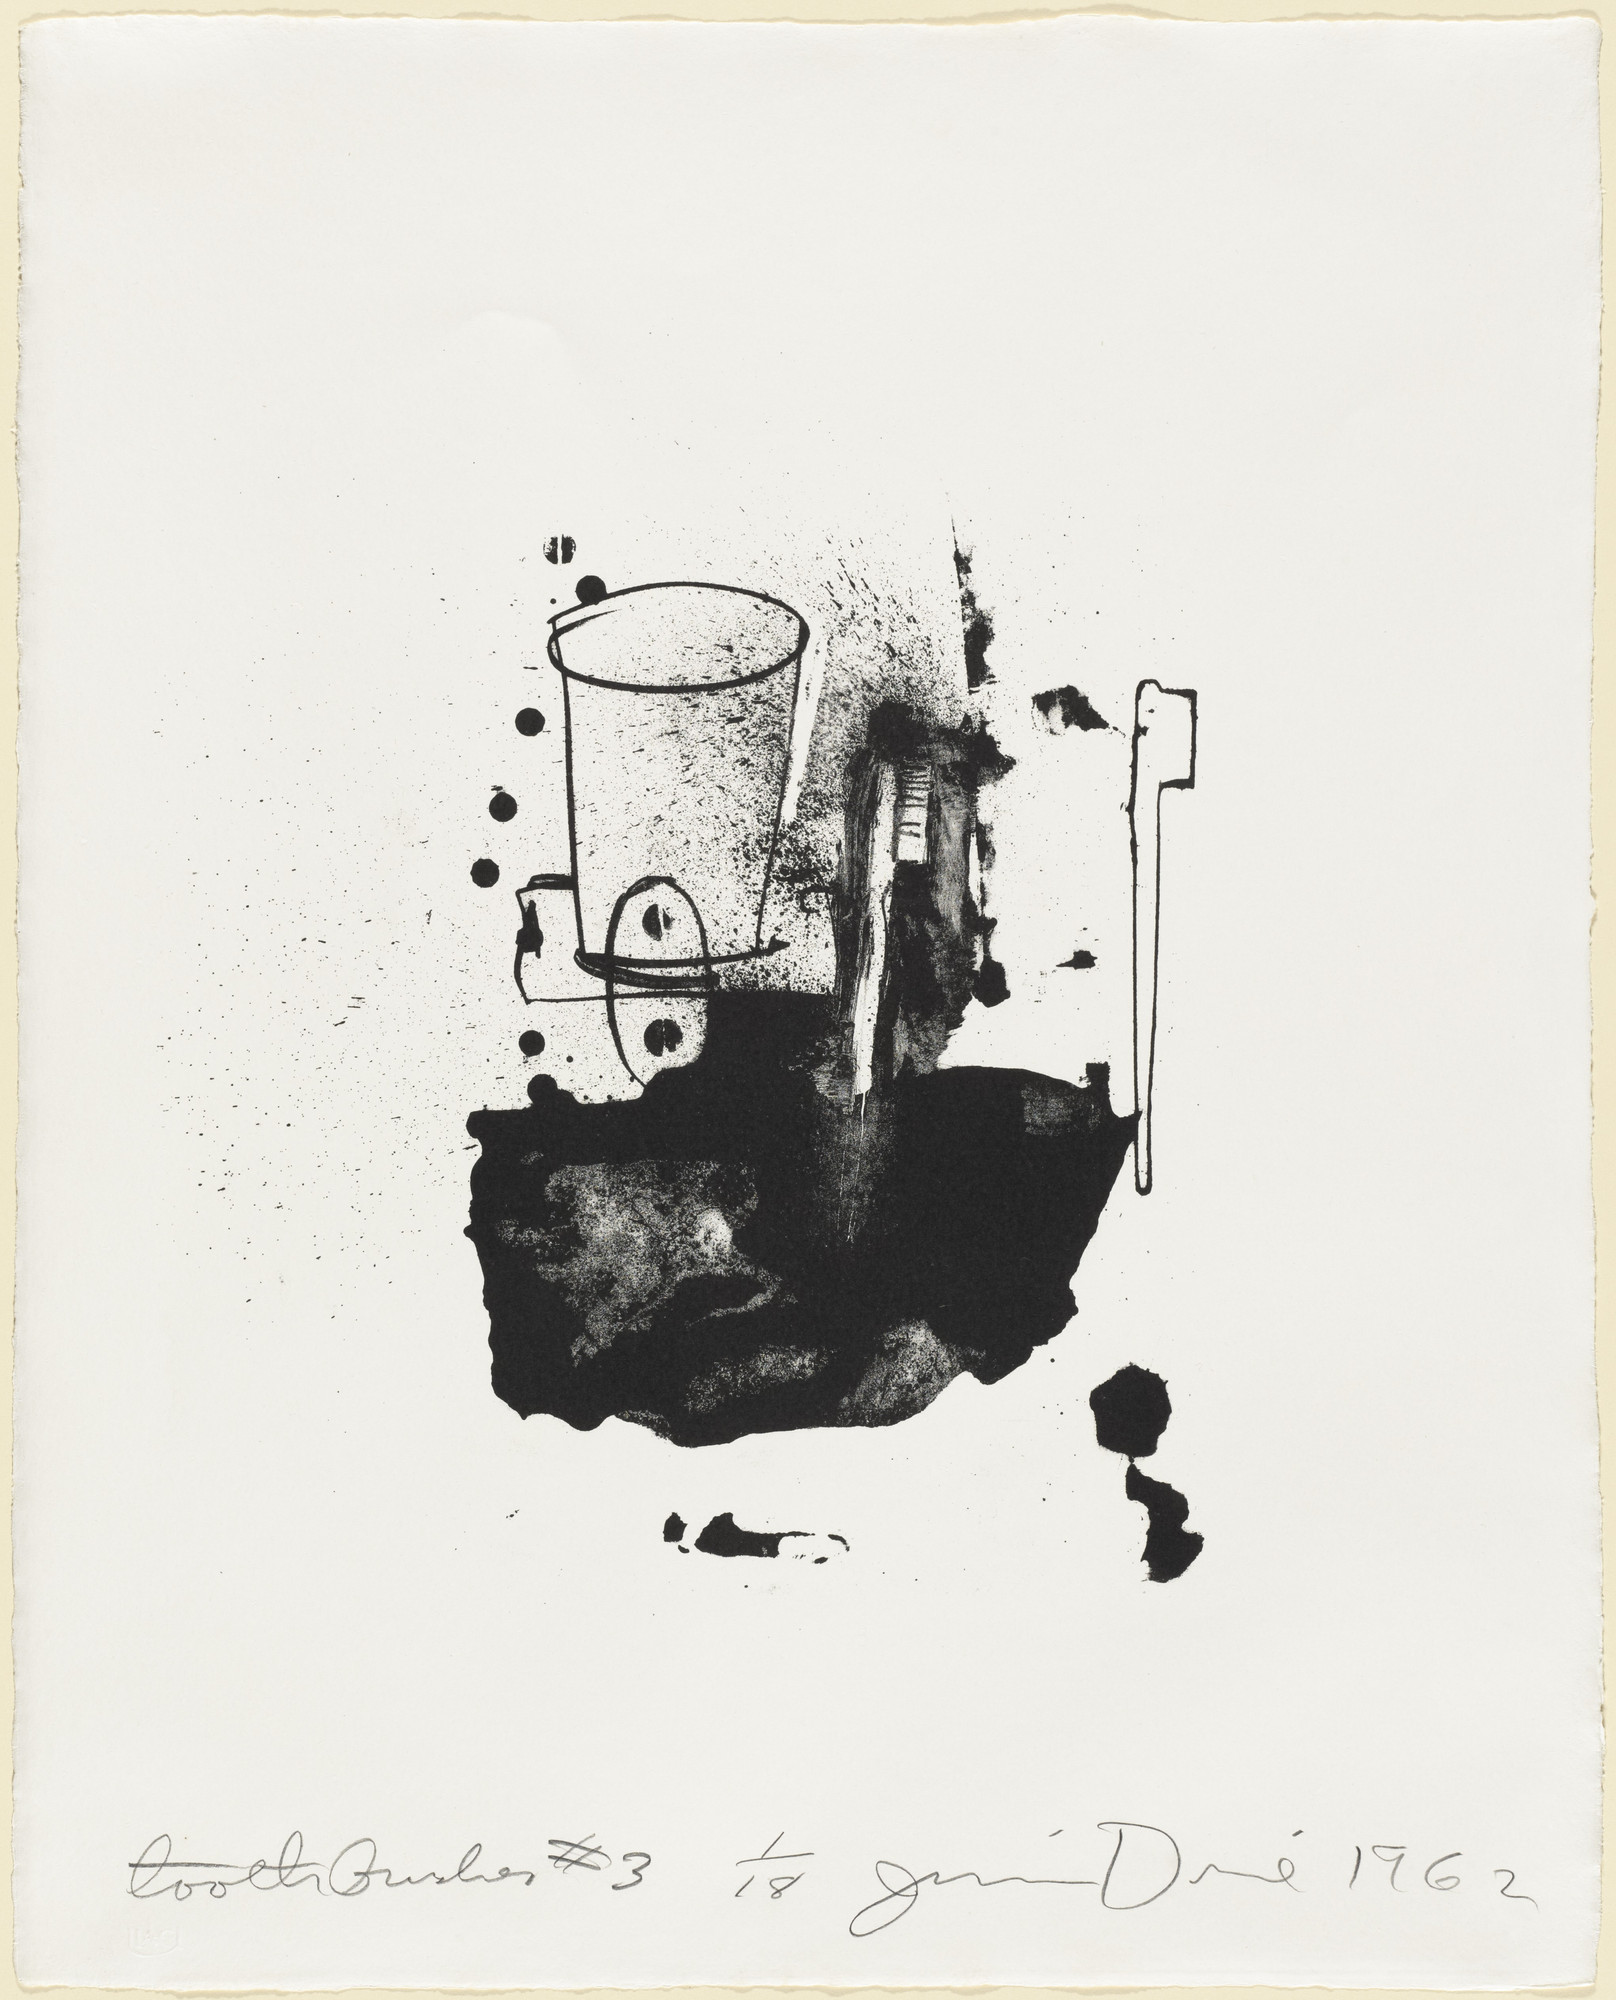 Jim Dine. Toothbrushes #3. 1962